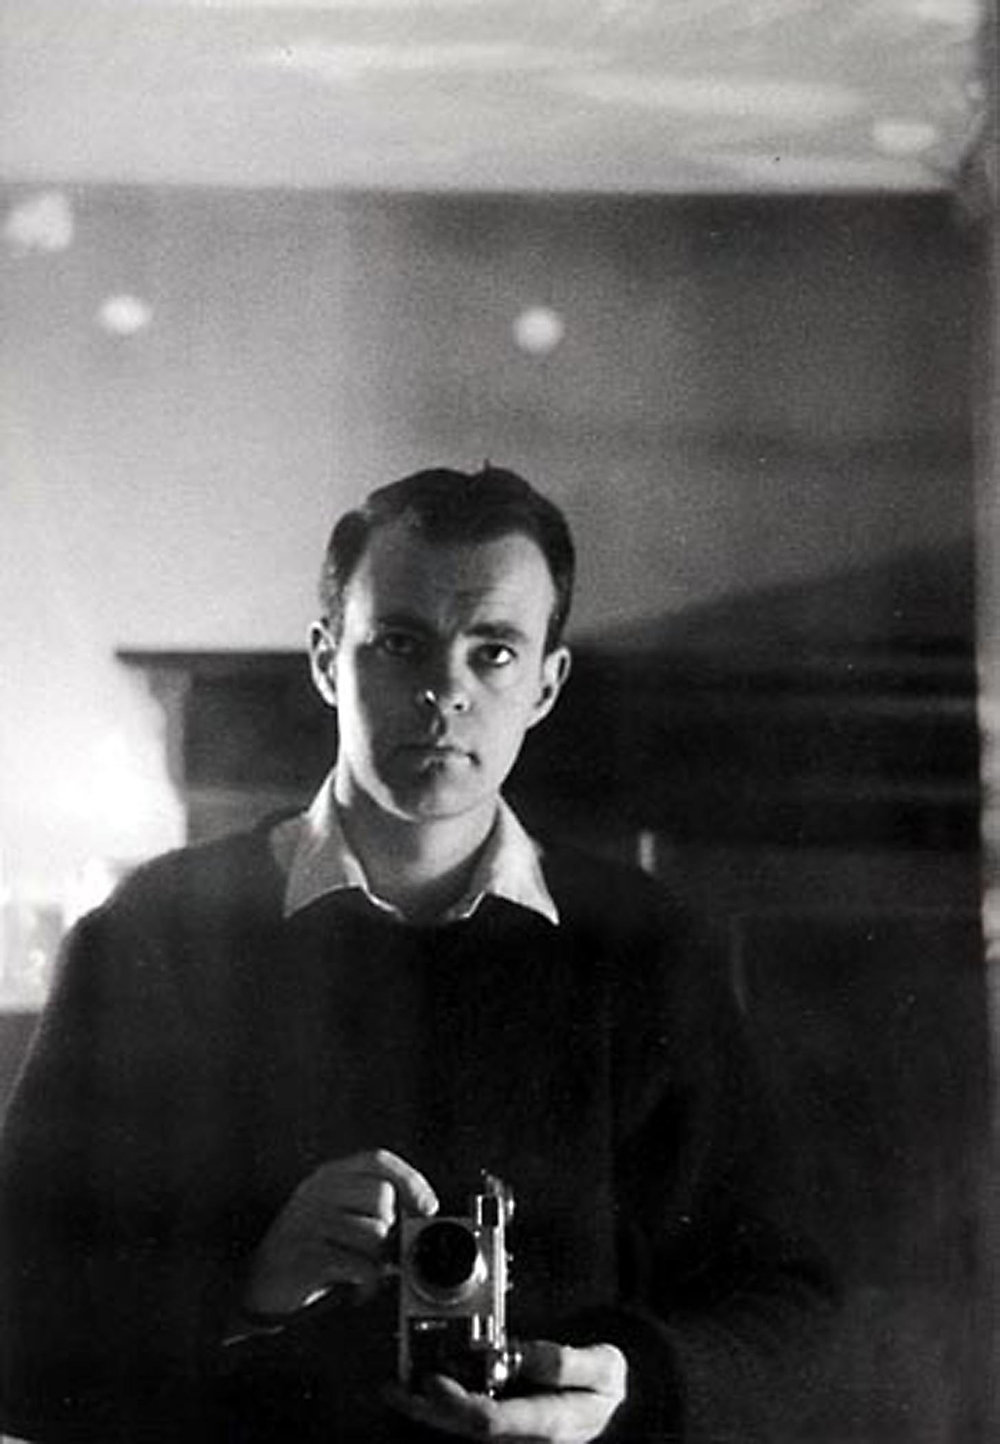 HANNON_self_portrait_(paris)_1958_high.jpg